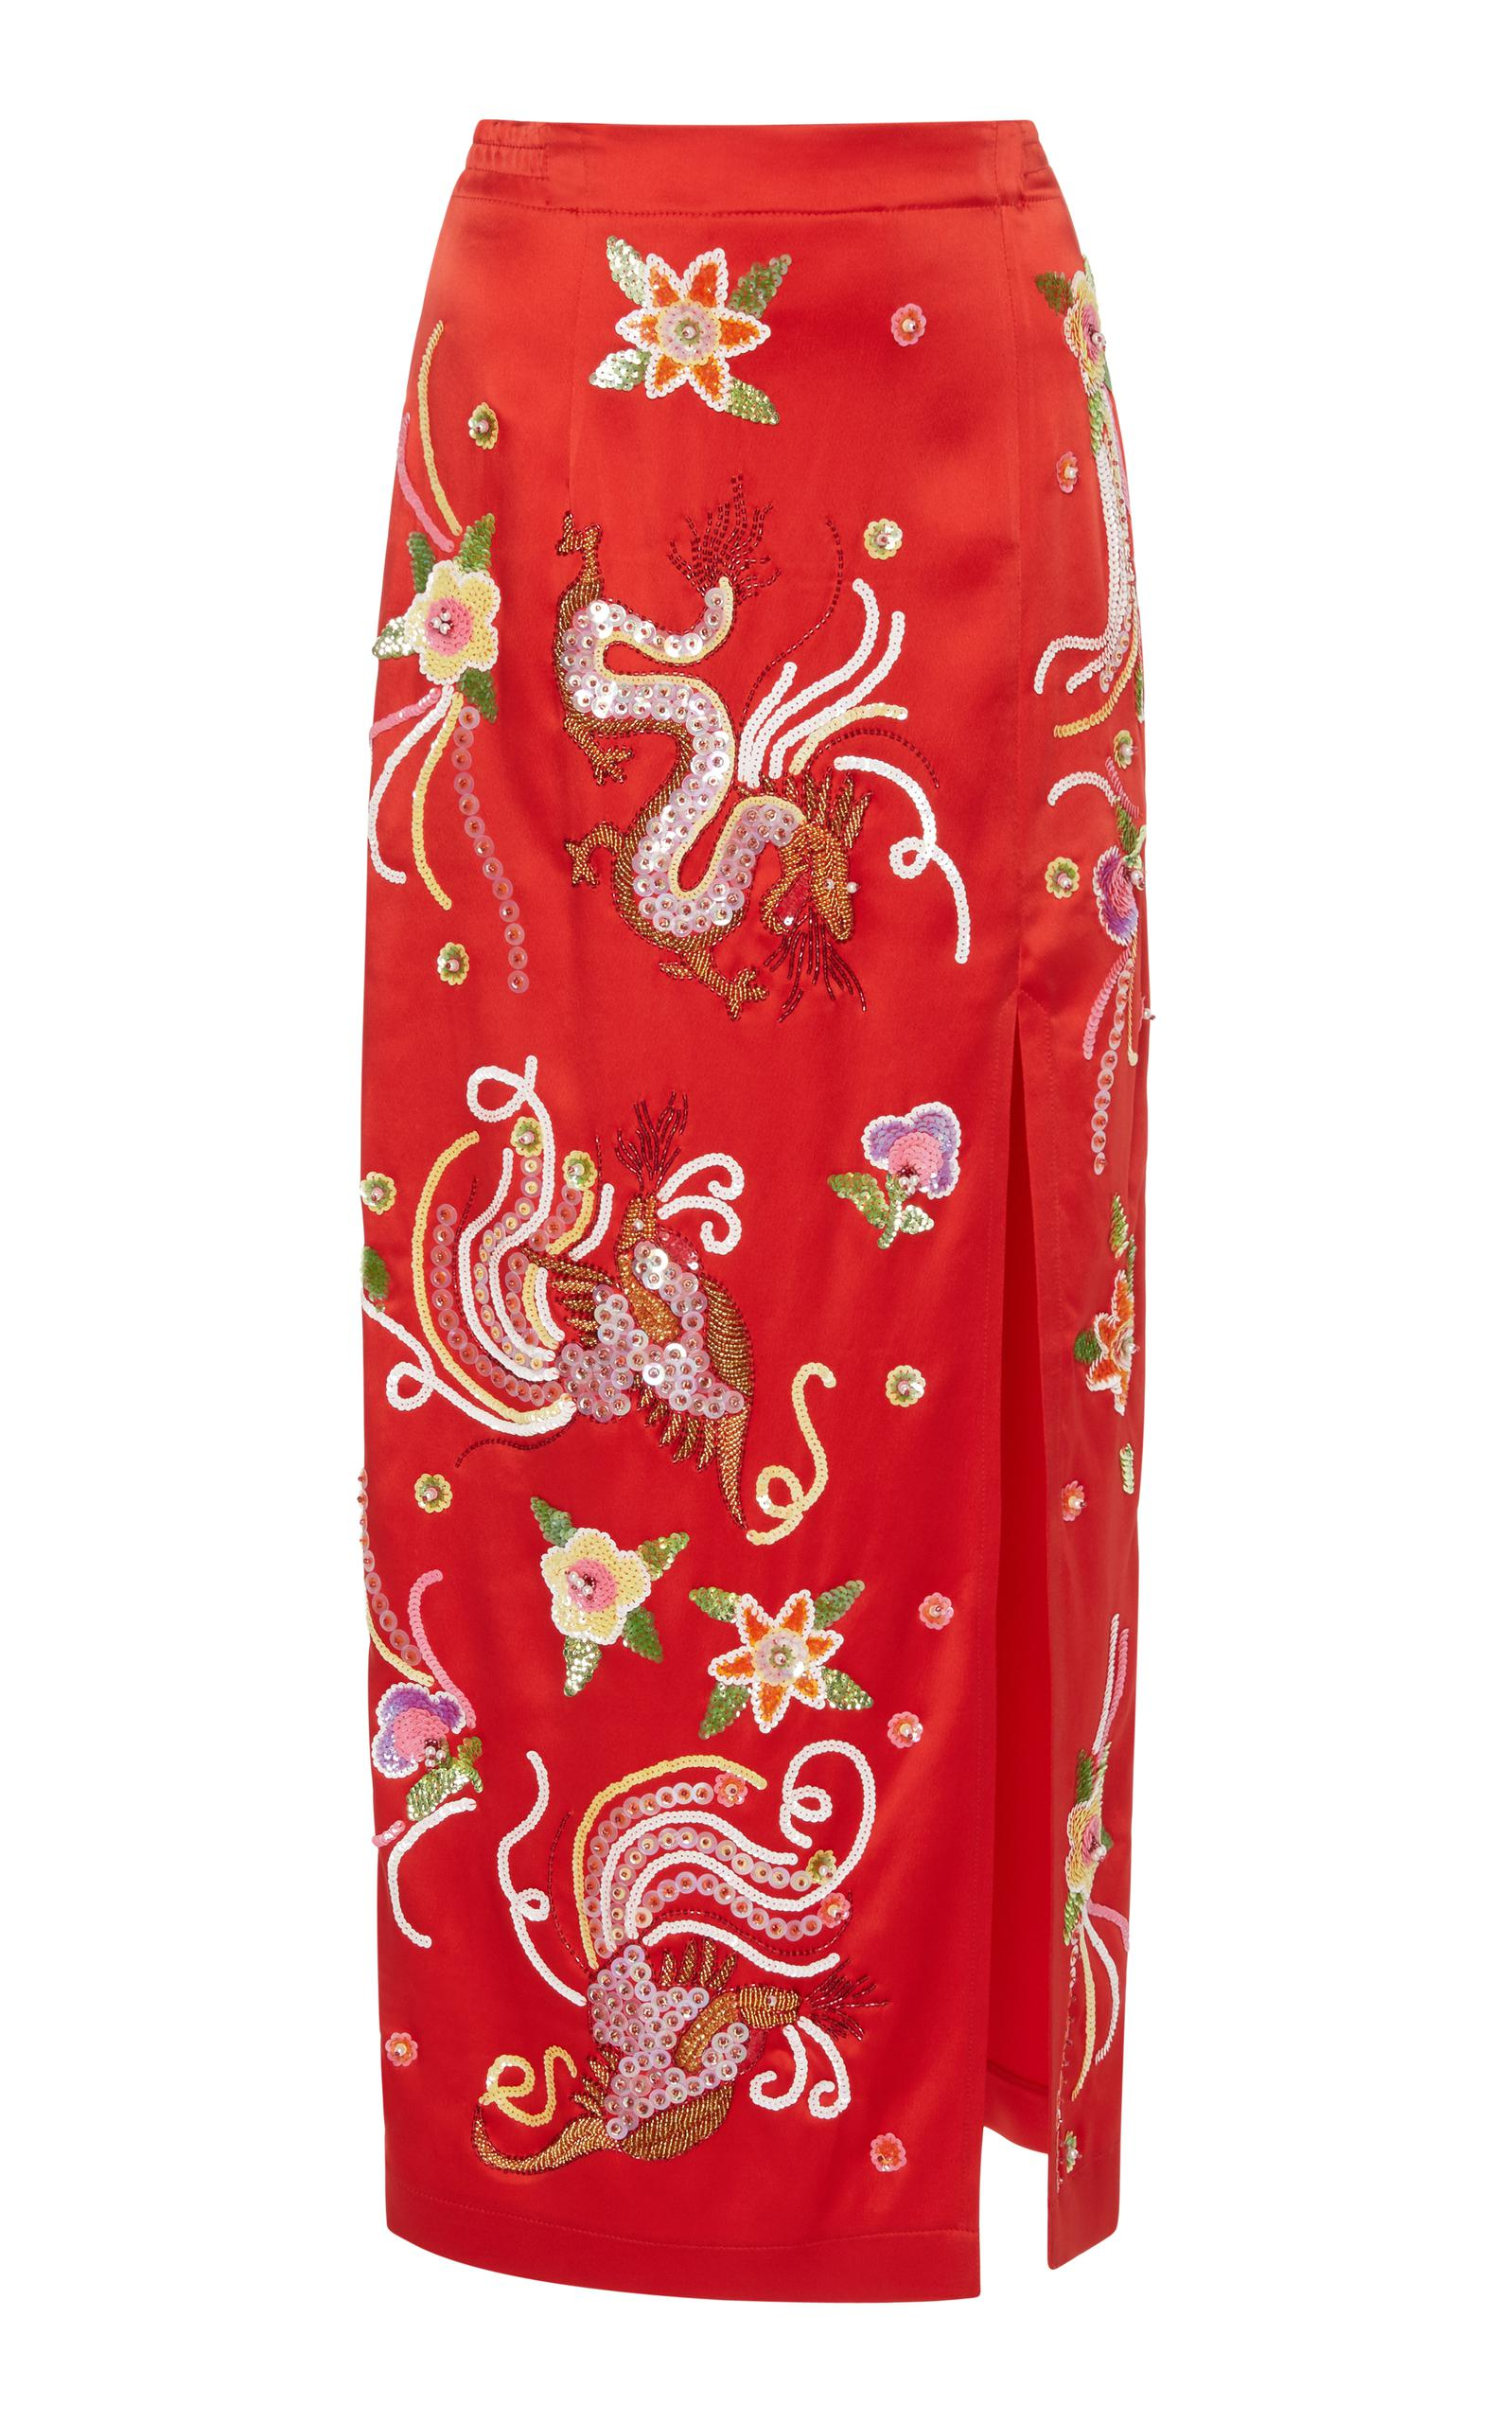 Get Online Sast For Sale Embroidered-dragon satin skirt Attico Pay With Visa Cheap Price gBpoTBO